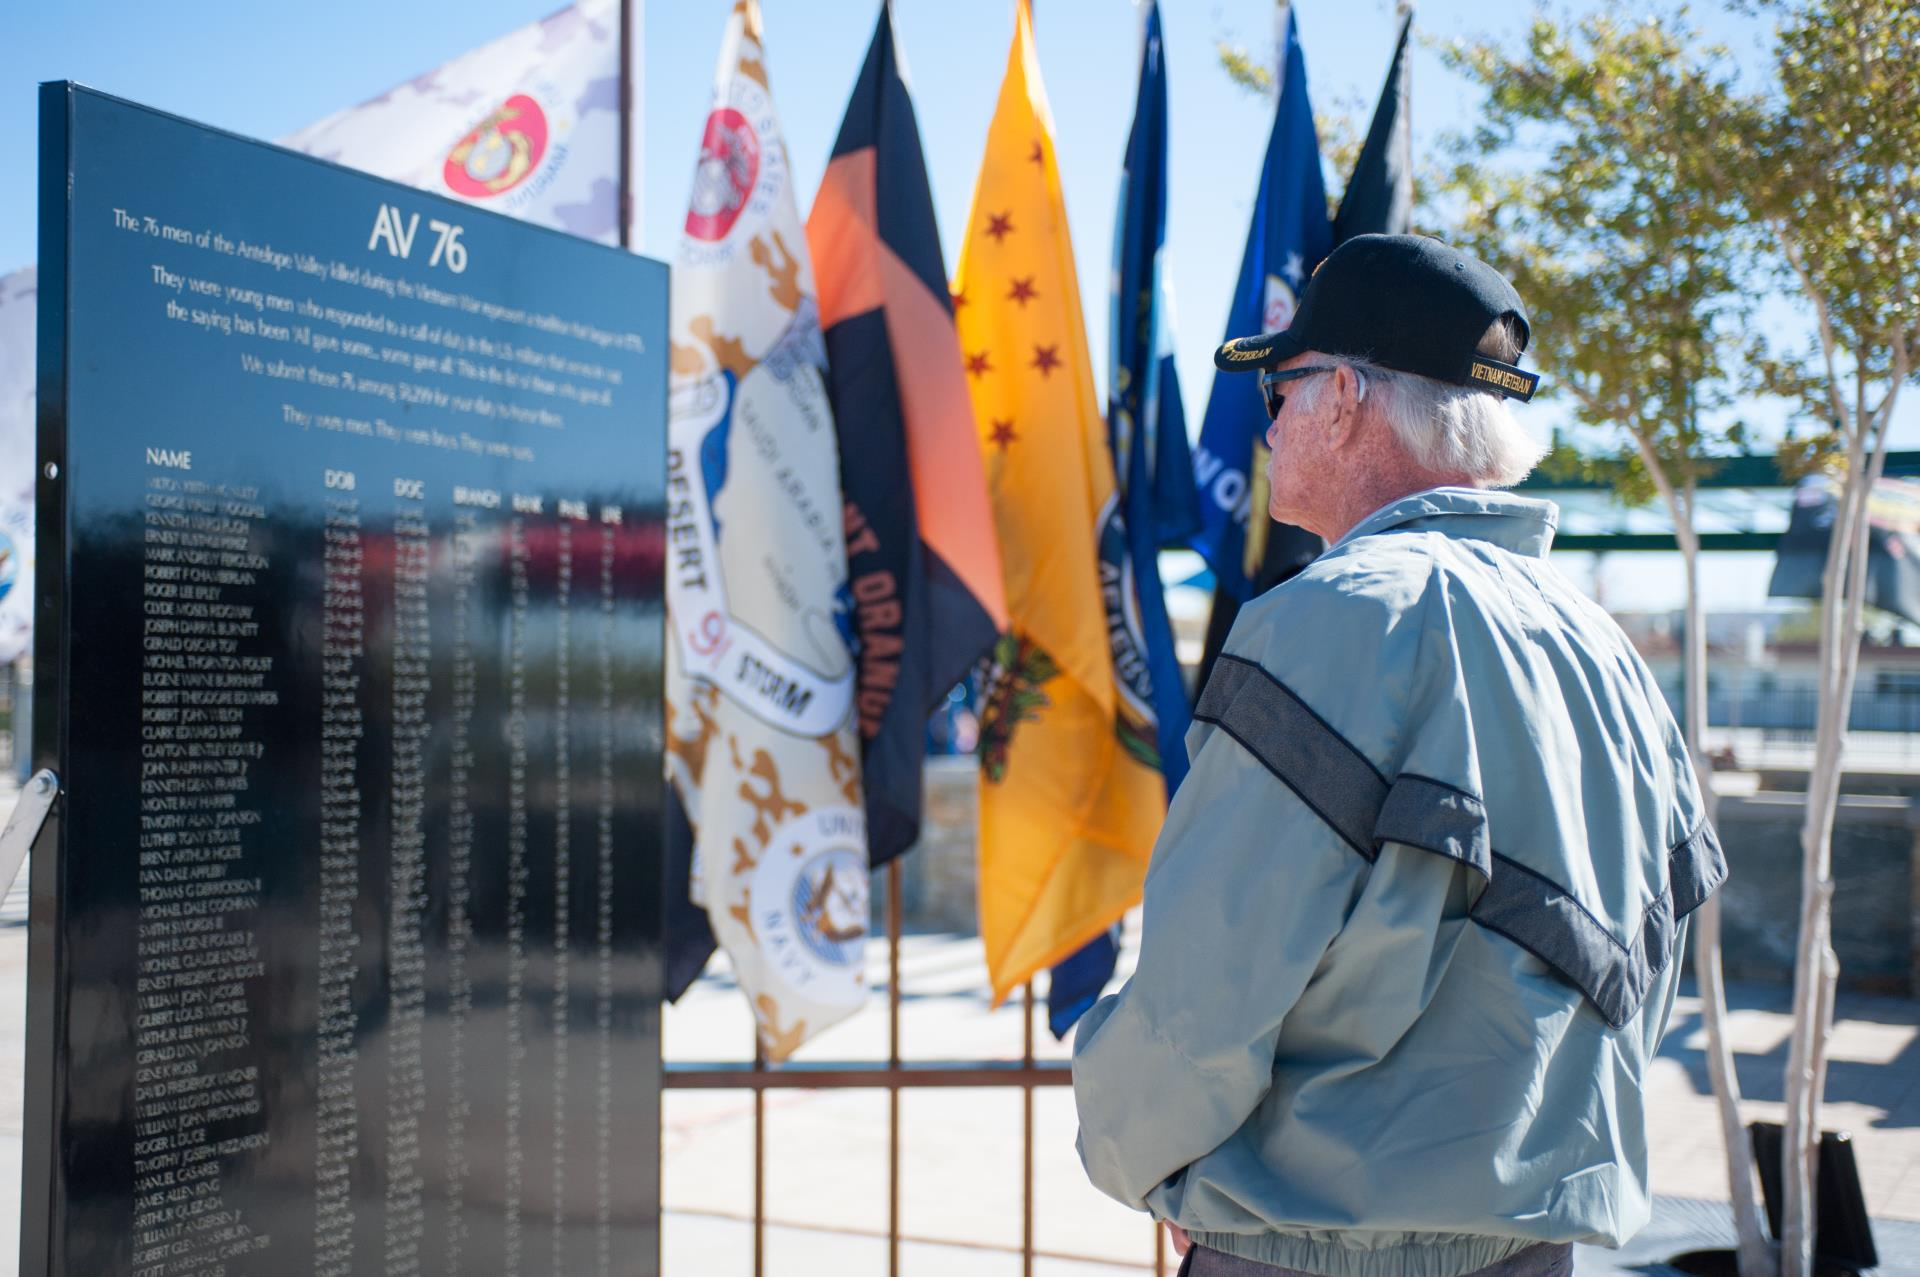 Vietnam Veterans_AV 76 Panel